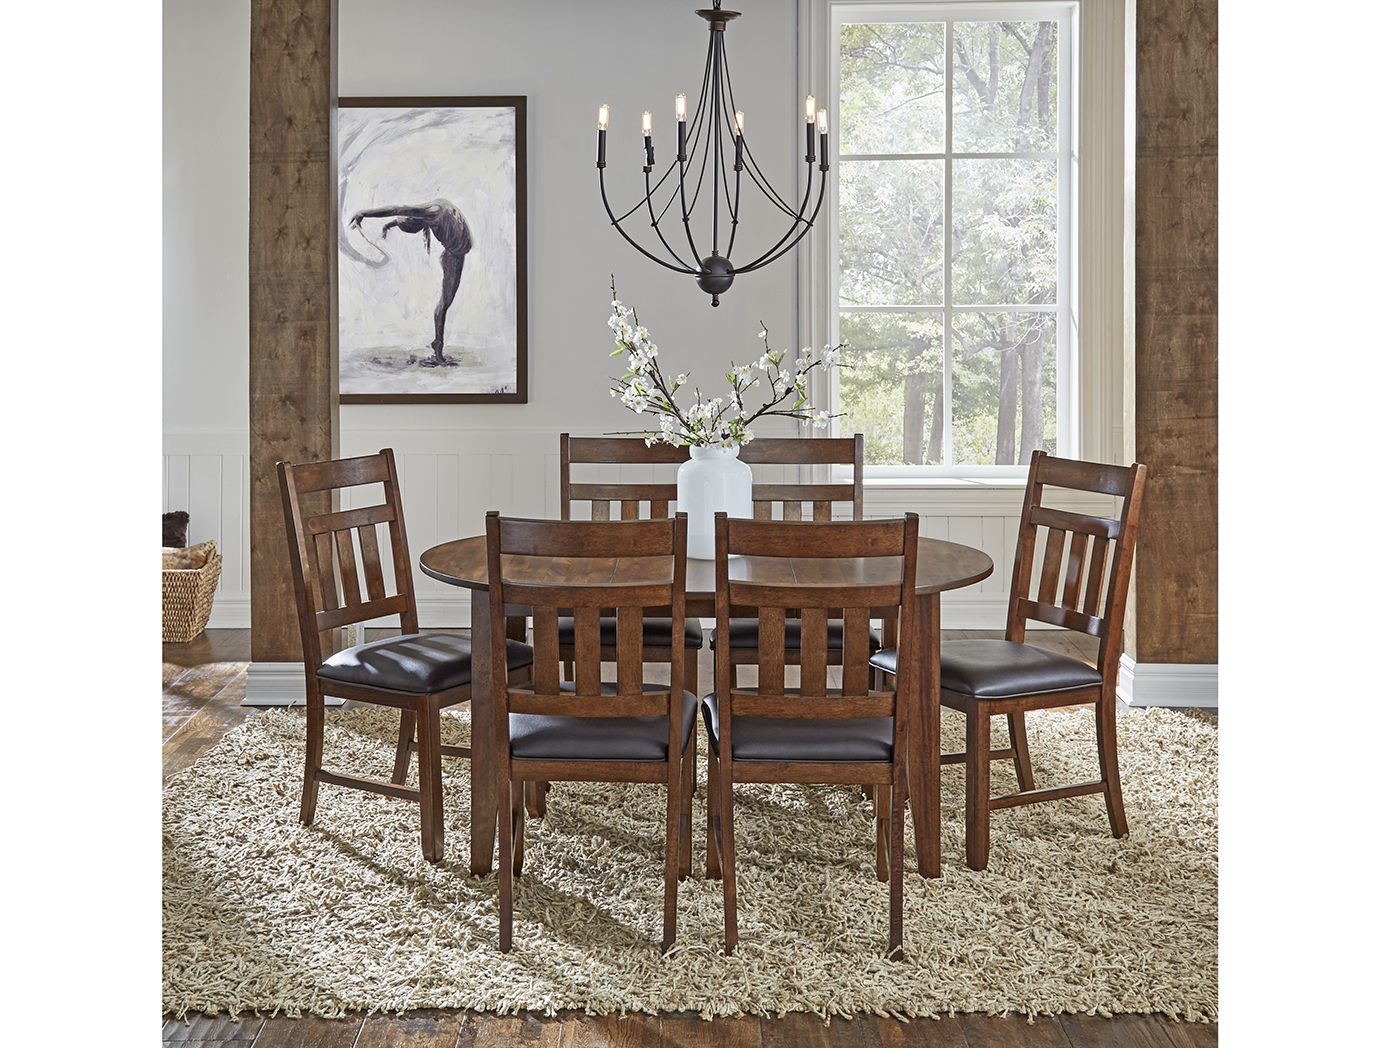 Mason 5-PC Dining Set W/Slatback Chair